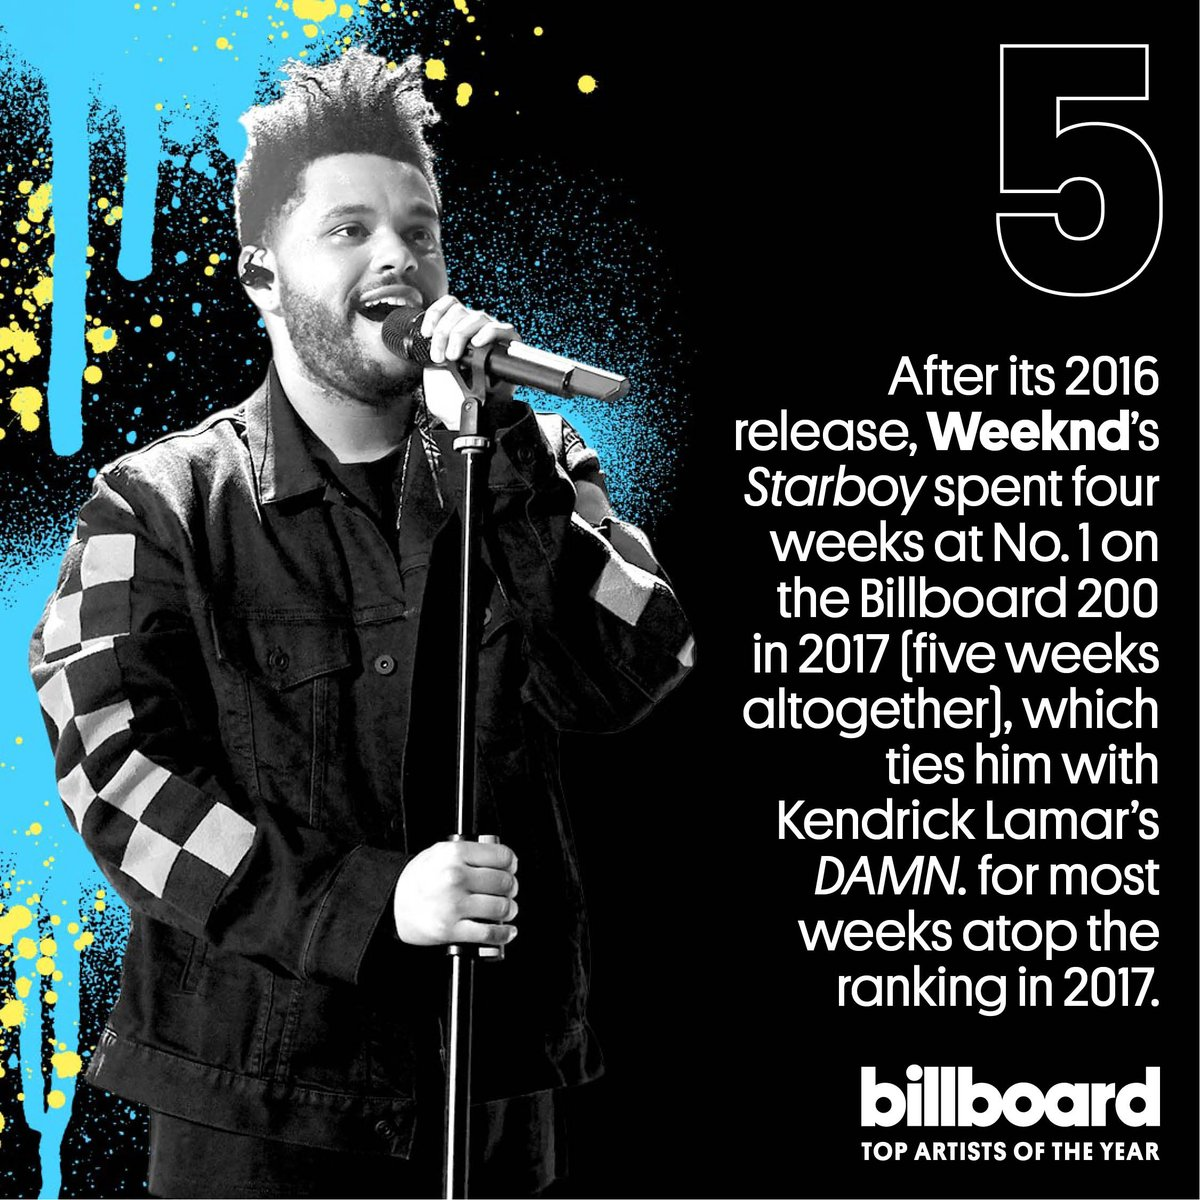 .@TheWeeknd comes in at No. 5 on our top artists of the year list! #YearInMusic https://t.co/YzKeOuNmXU https://t.co/CUyaBjEa7h